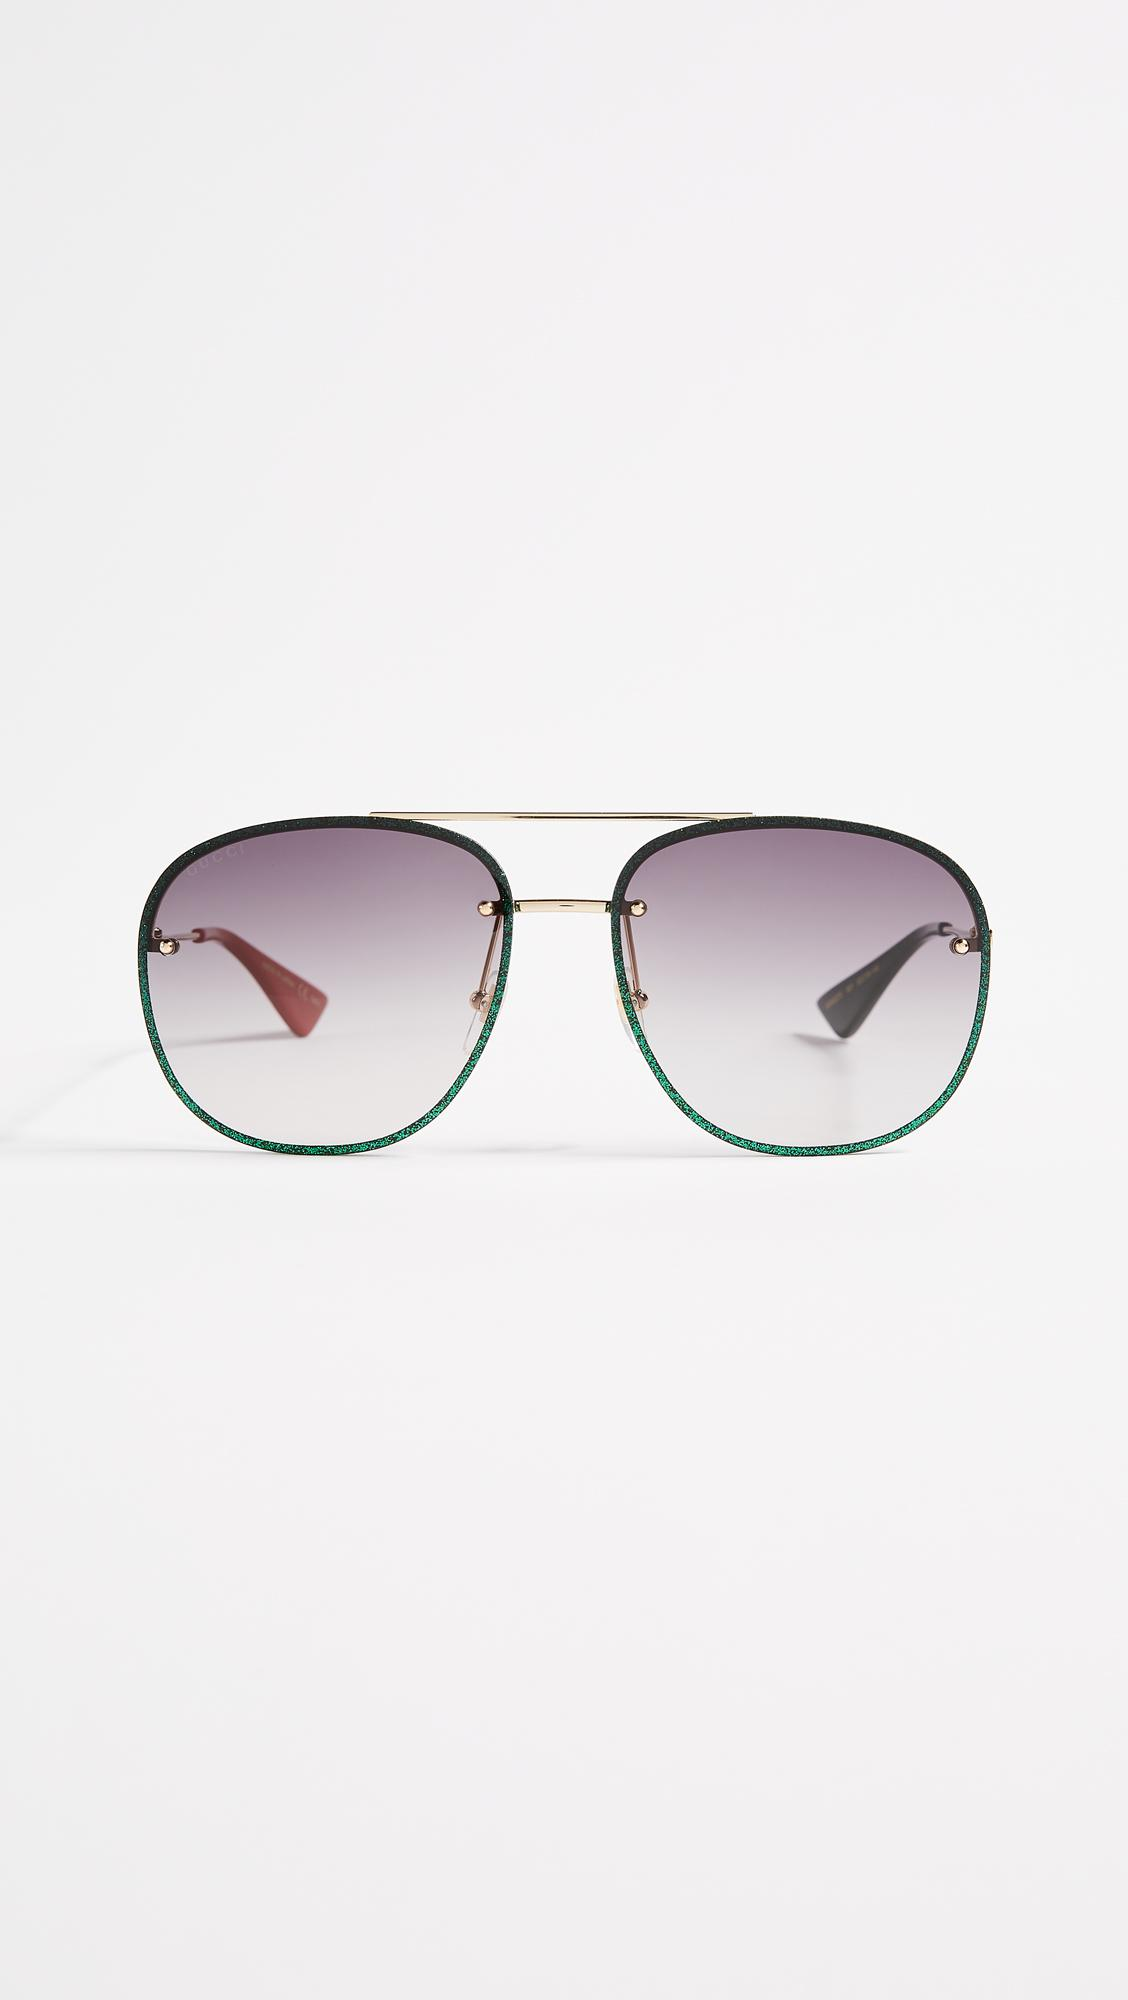 8eb5dd981a Gucci Leather Frame Aviator Sunglasses « One More Soul